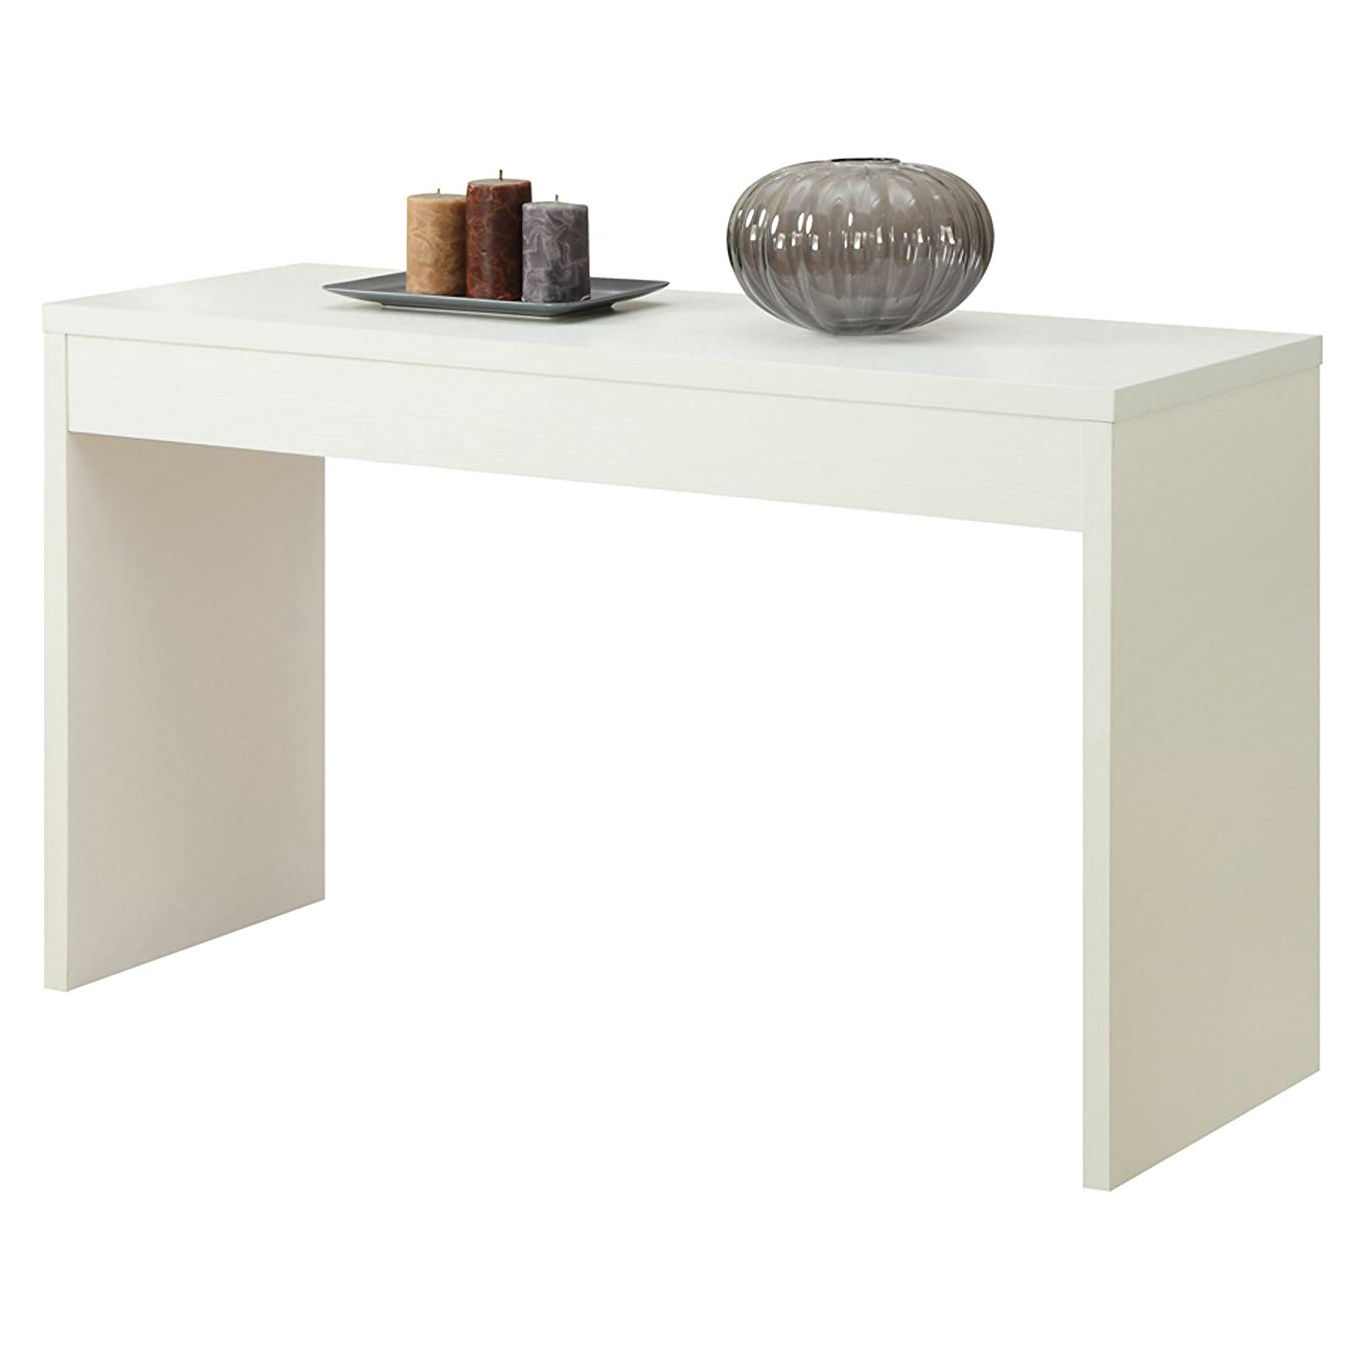 White Sofa Table Modern Entryway Living Room Console Table ...